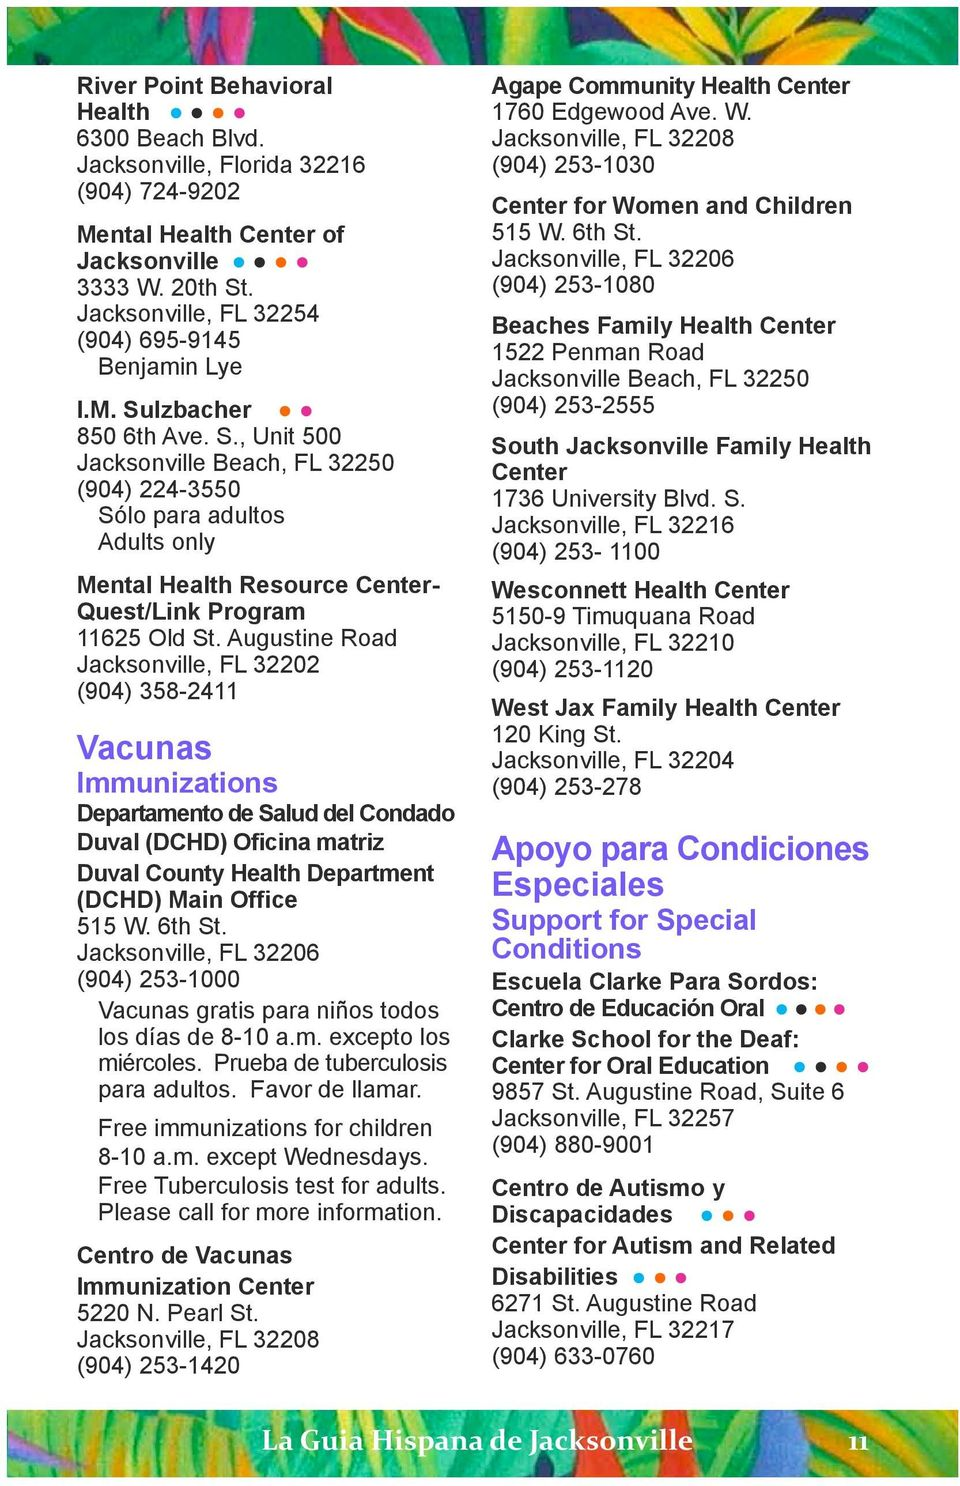 Augustine Road (904) 358-2411 Vacunas Immunizations Departamento de Salud del Condado Duval (DCHD) Oficina matriz Duval County Health Department (DCHD) Main Office 515 W. 6th St.